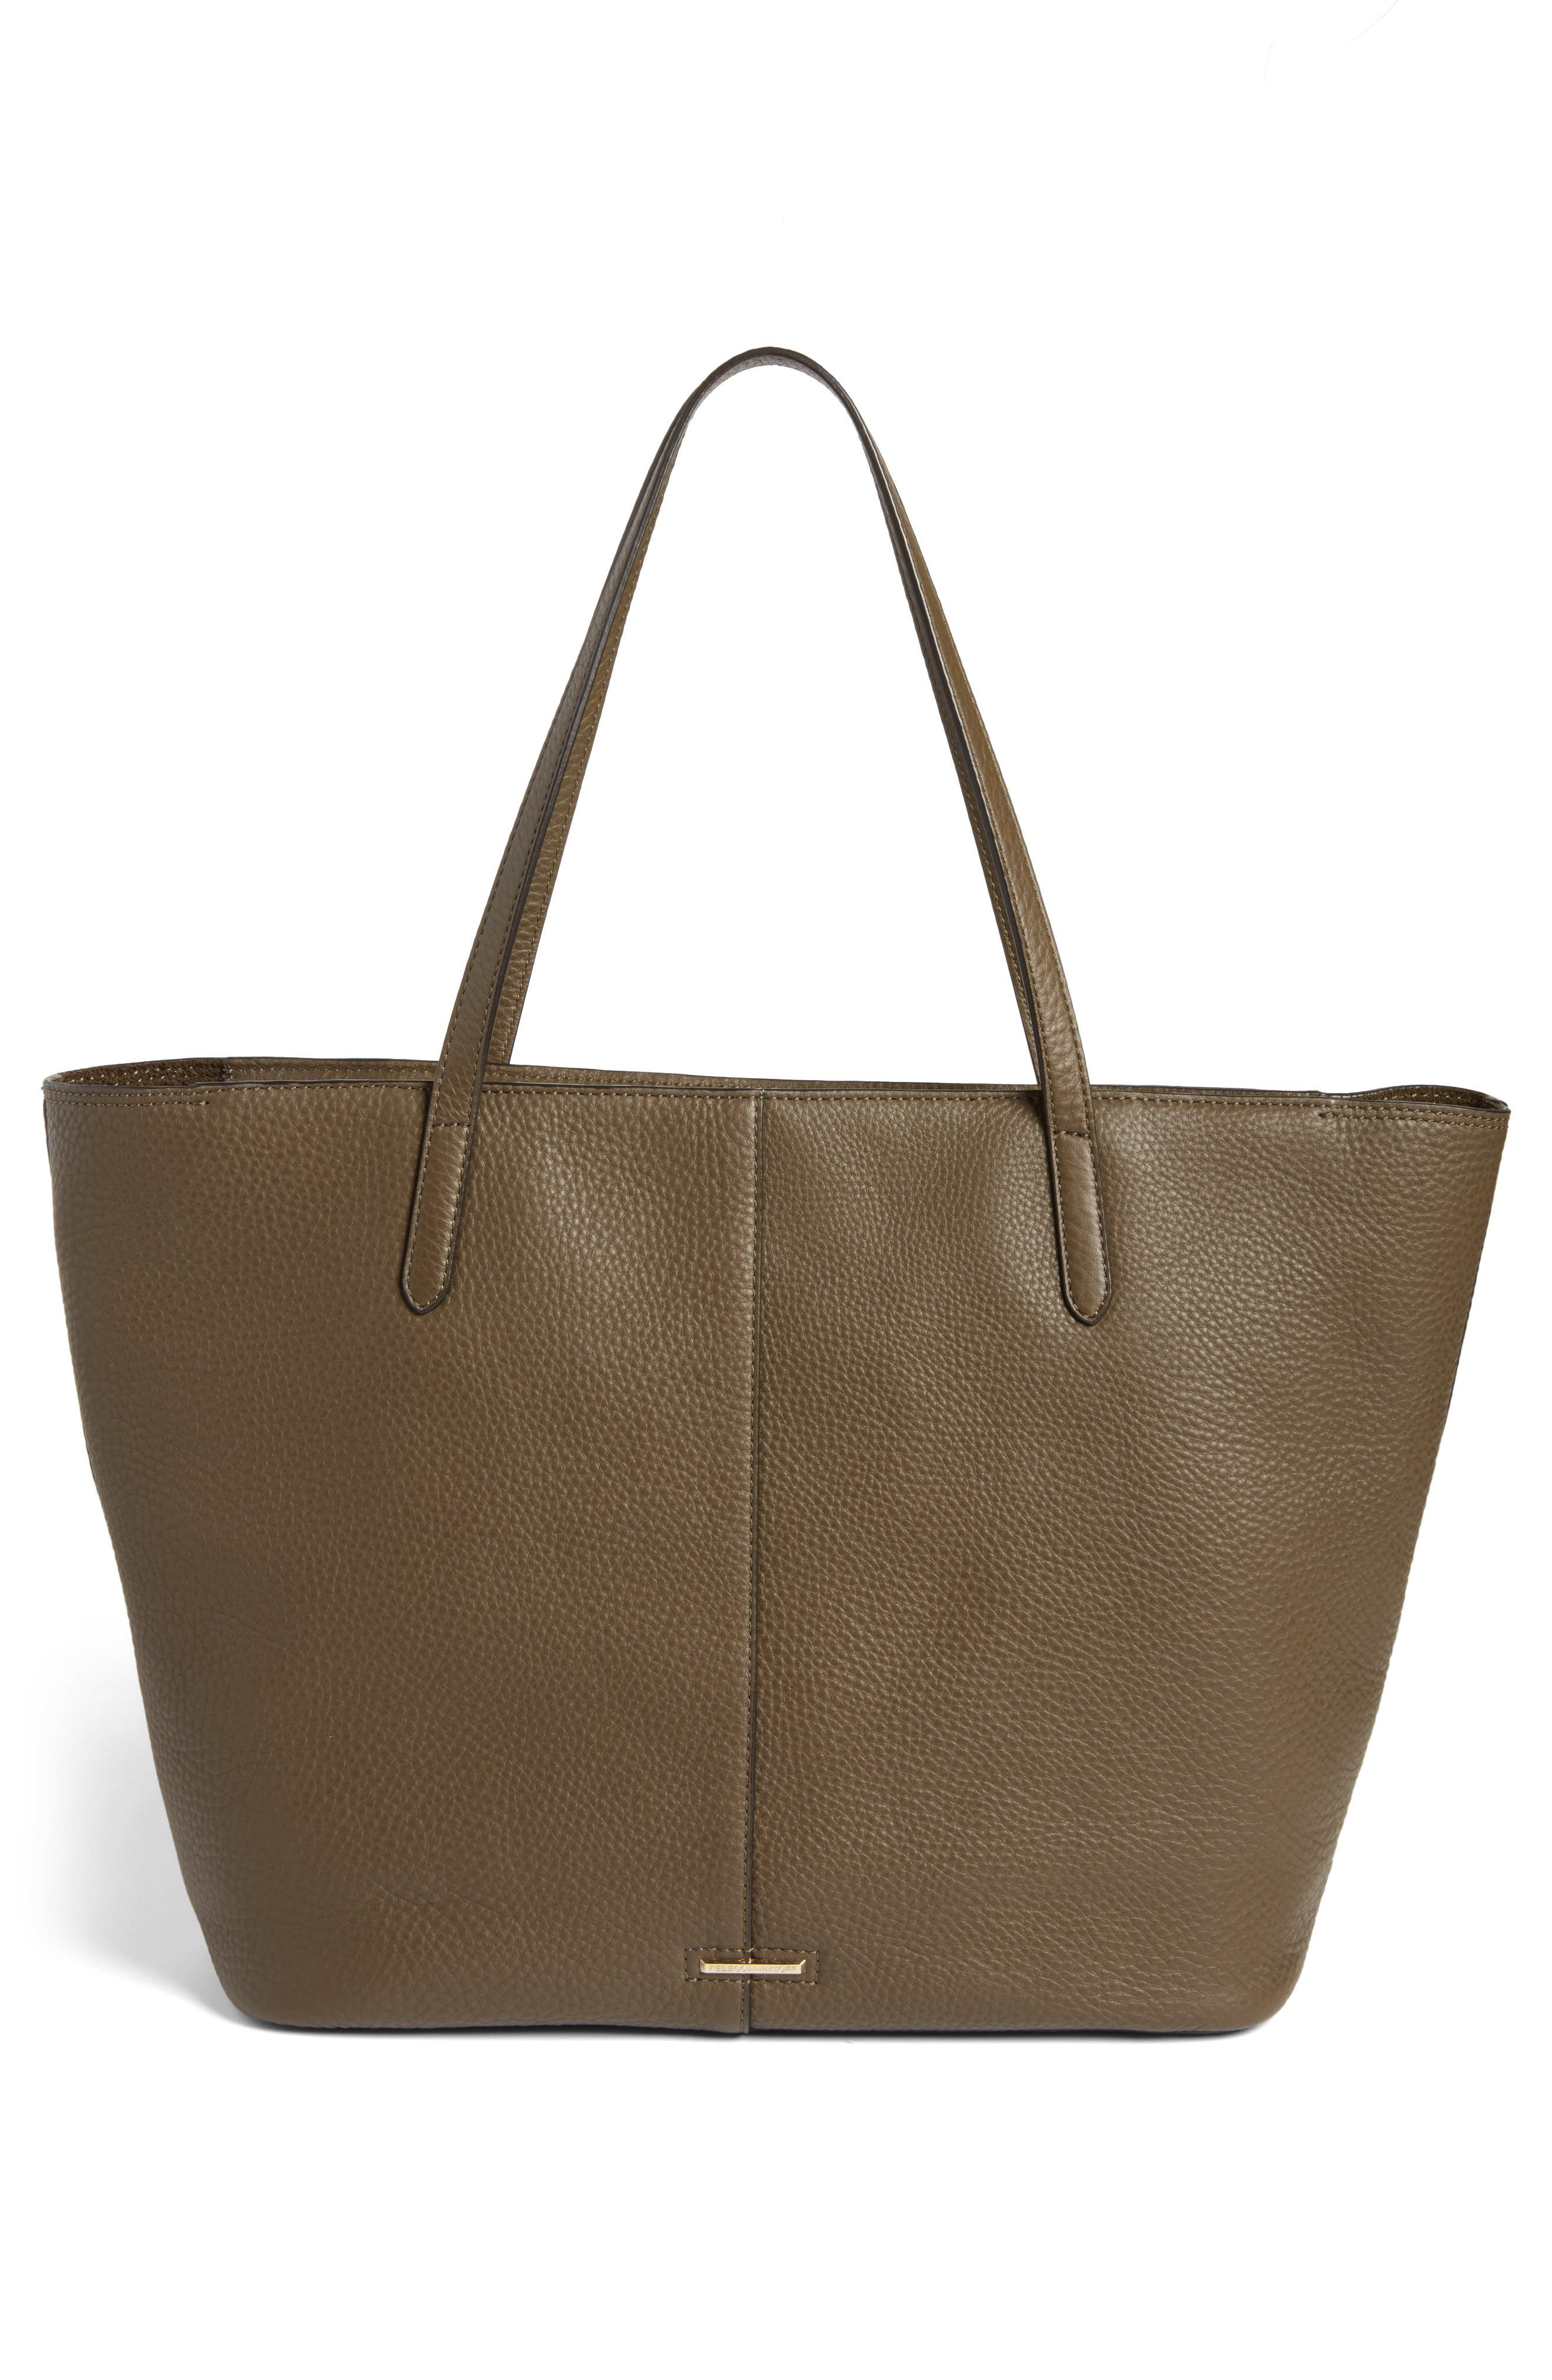 Unlined Front Pocket Leather Tote,                             Alternate thumbnail 3, color,                             Moss/ Light Gold Hardware